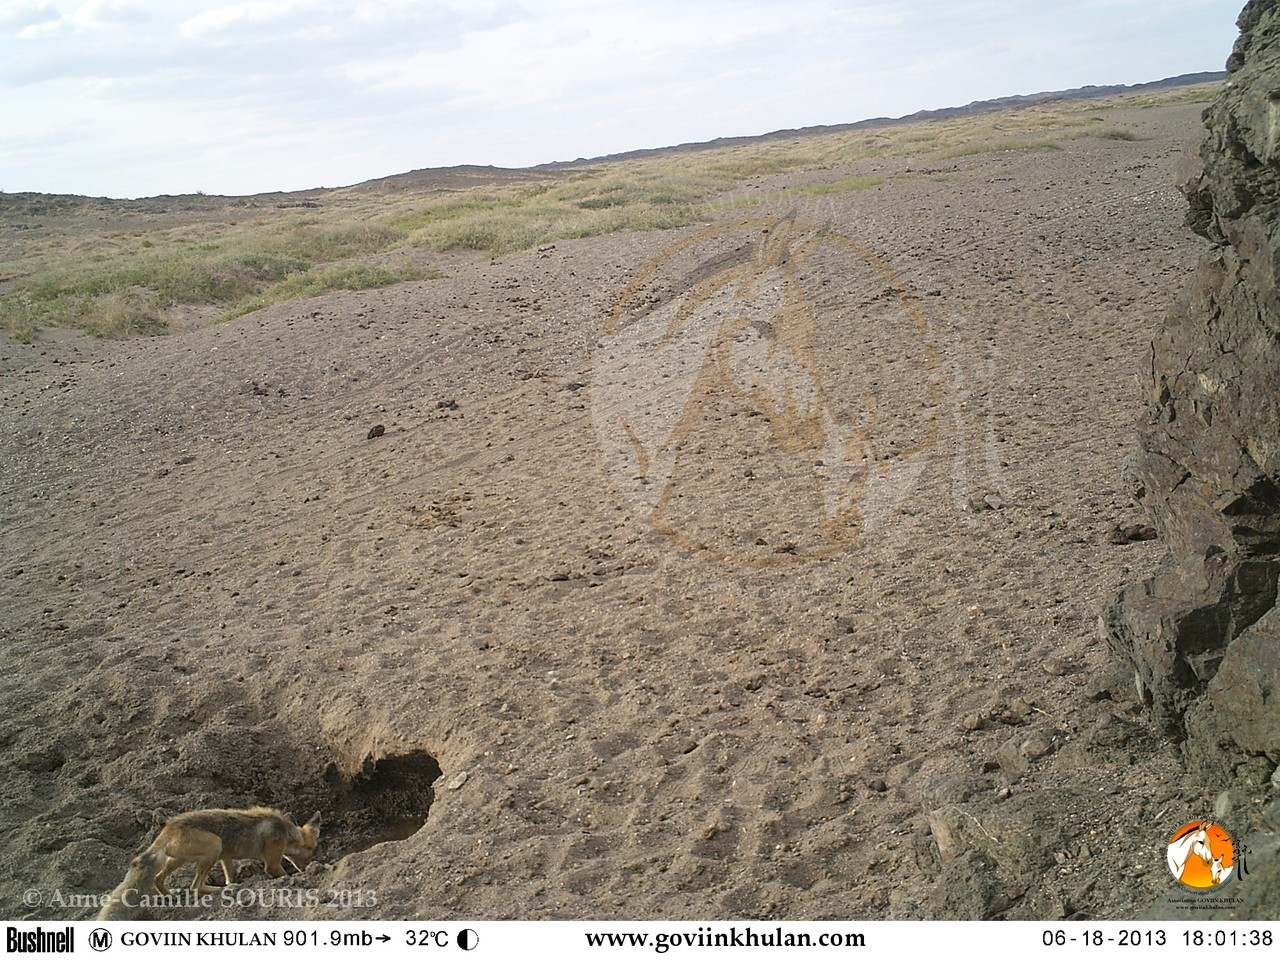 Corsac fox drinking at a hole dug by a khulan at a dry river bed / Gobi, Mongolia / June 2013